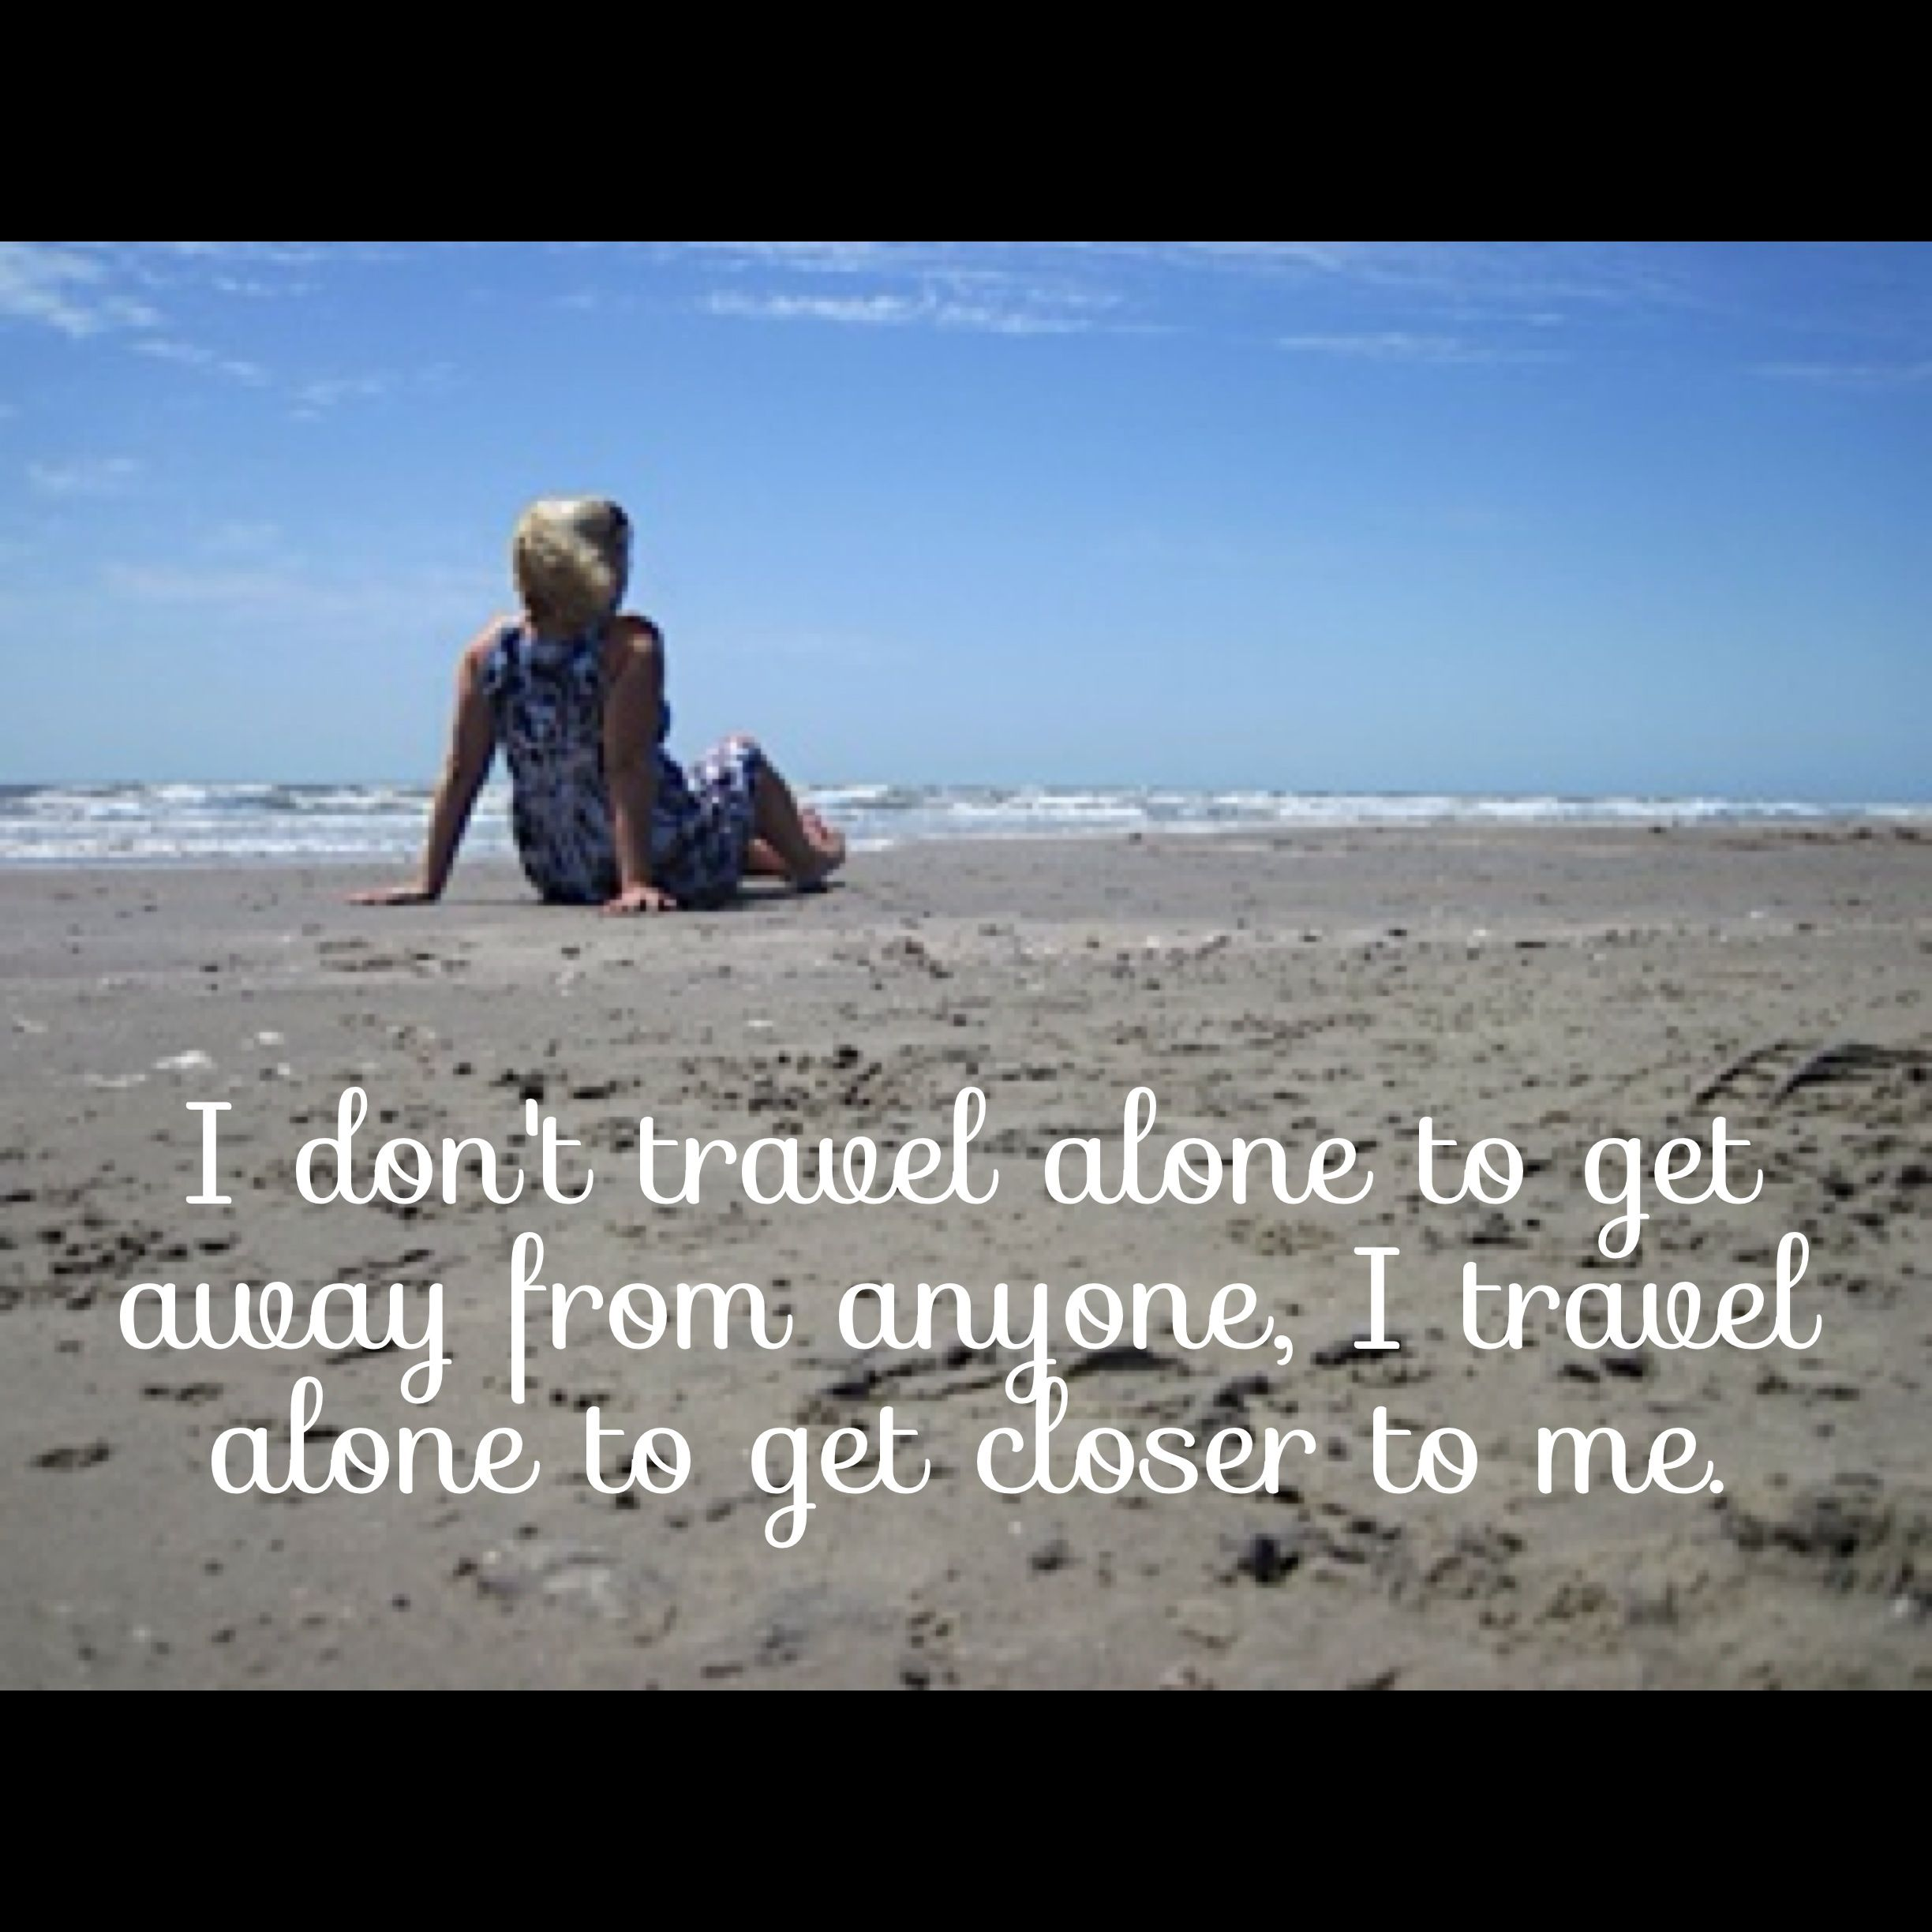 Travel Alone Quotes Best Self Photo With My Words To Describe Why I Love To Travel Solo